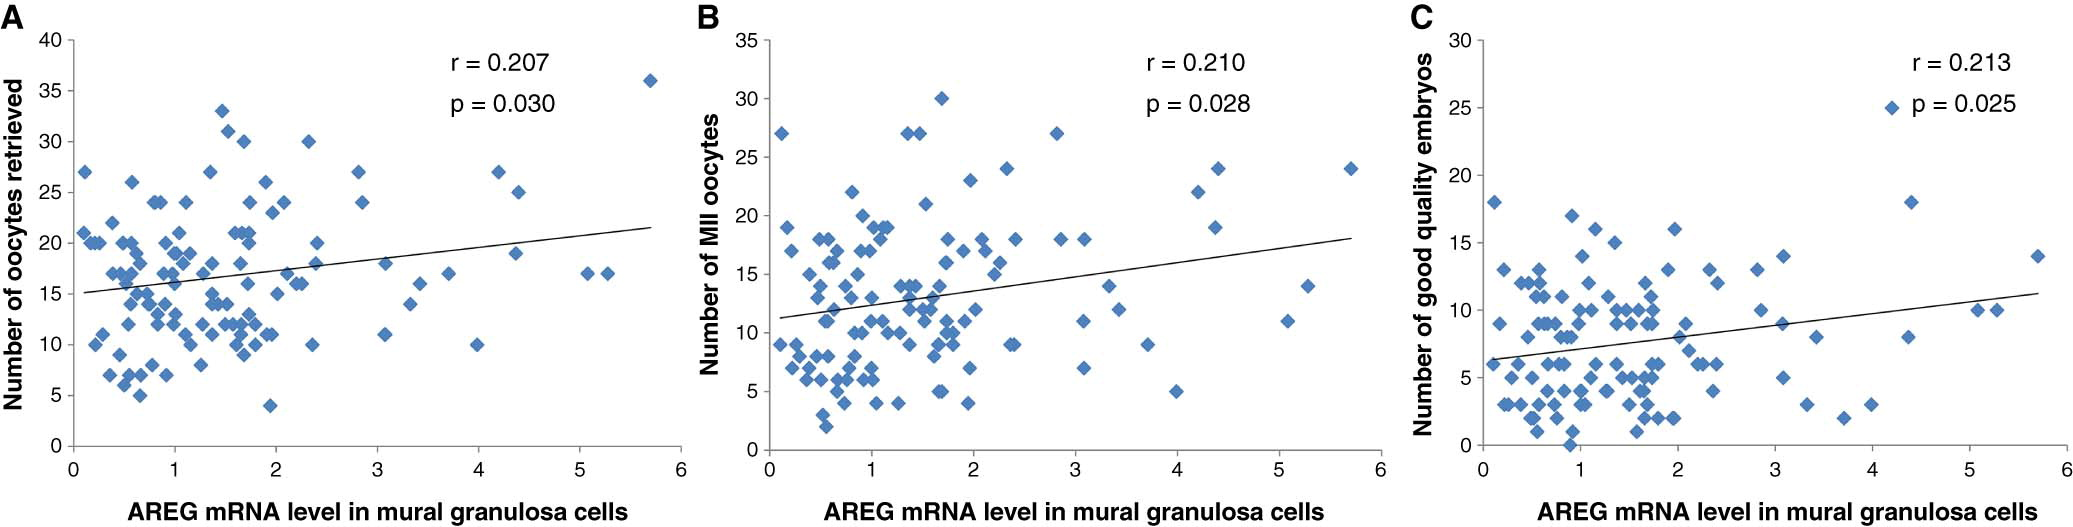 Altered amphiregulin expression induced by diverse for Mural granulosa cells